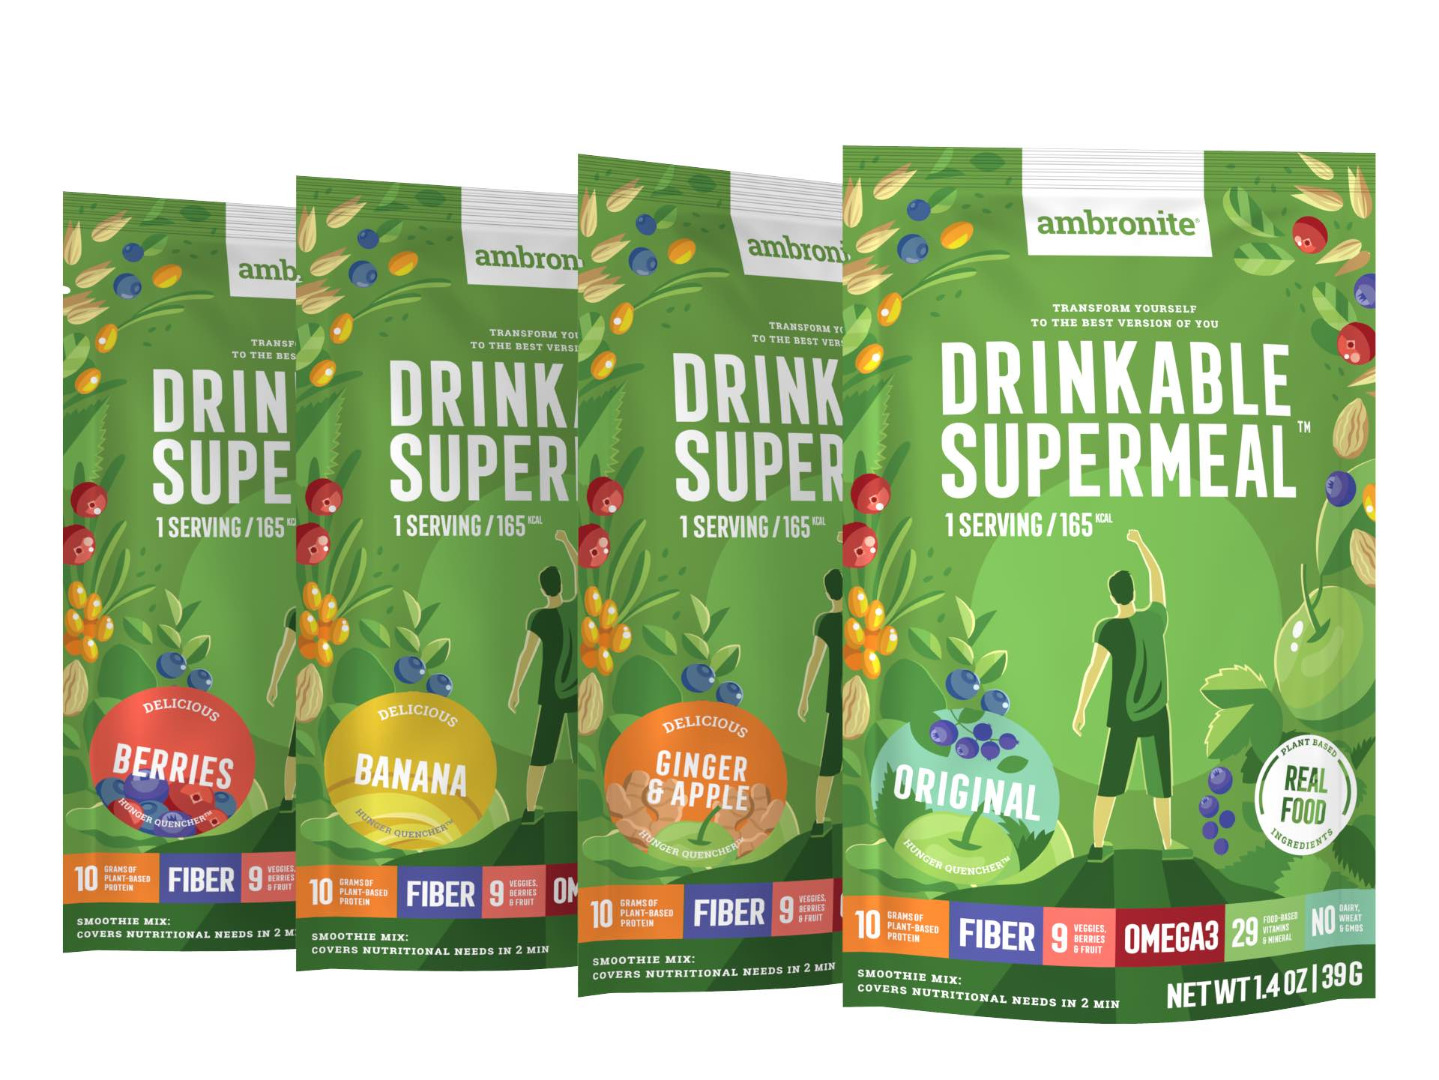 Ambronite 4 x 165 kcal snack meal pouches Sample